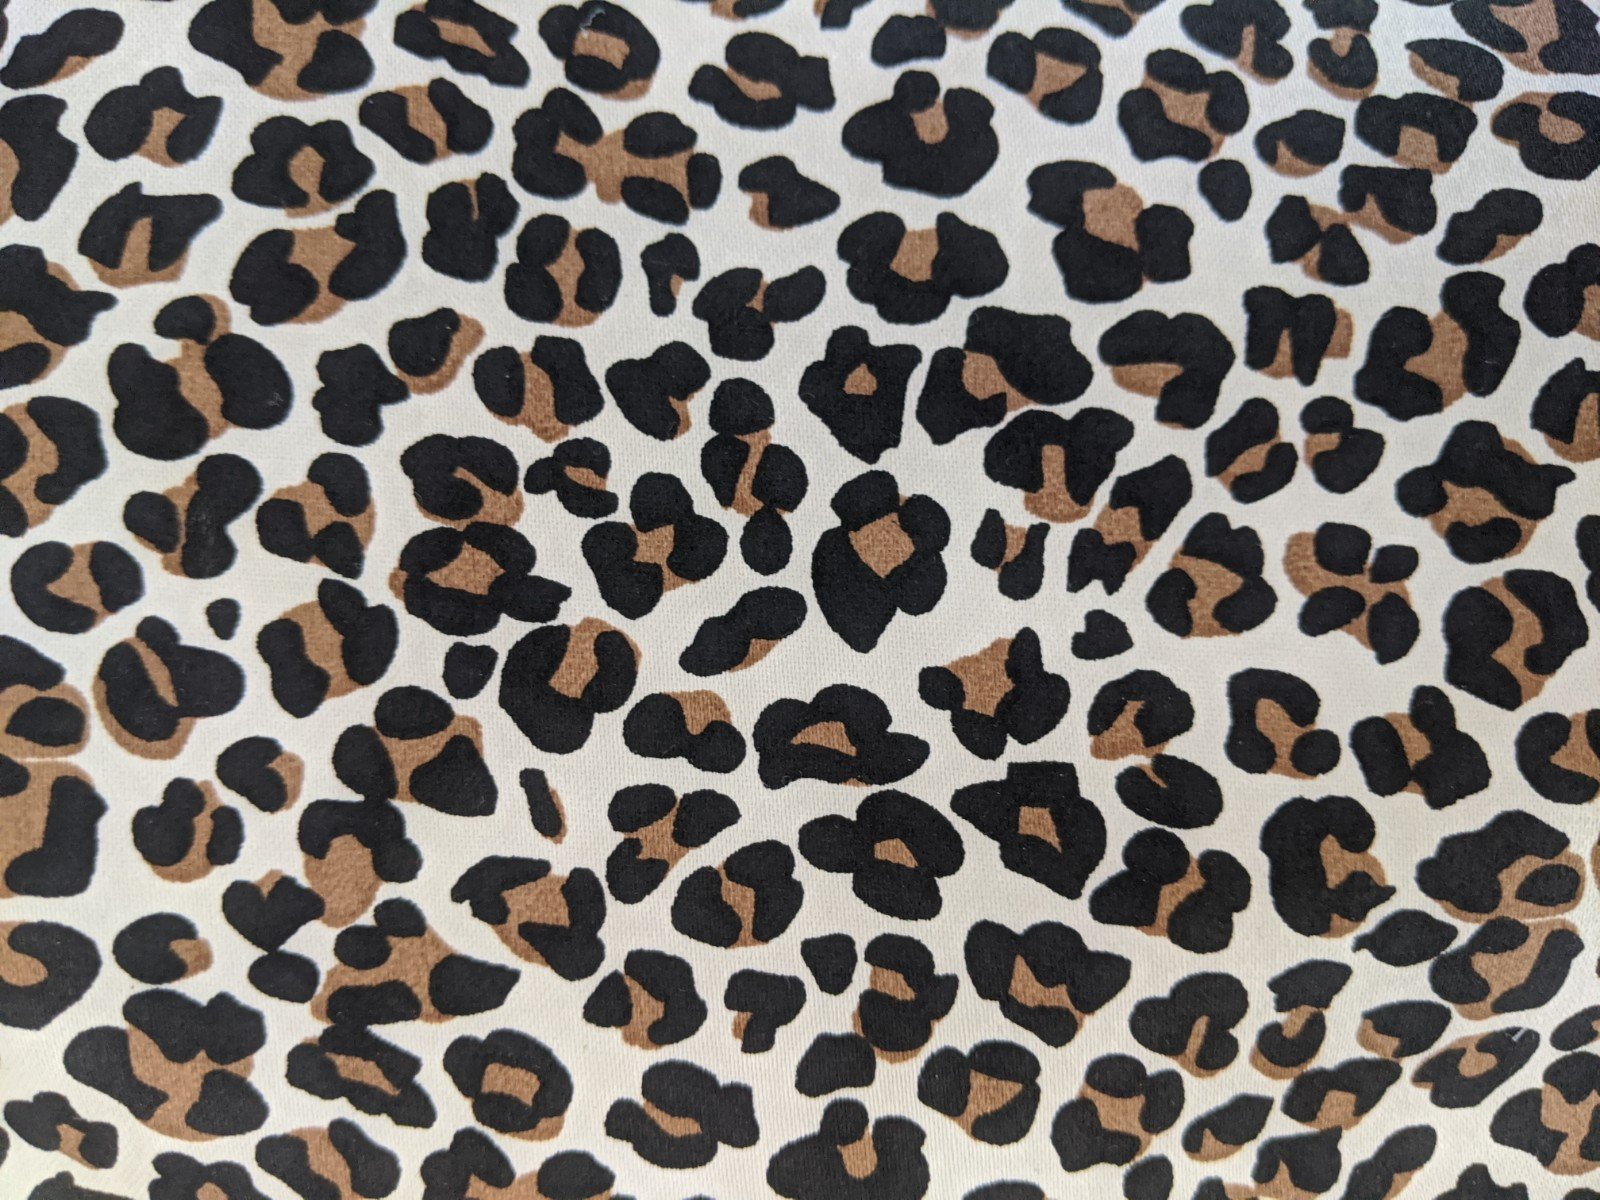 Leopard Print Stretch Sateen Cotton Lycra